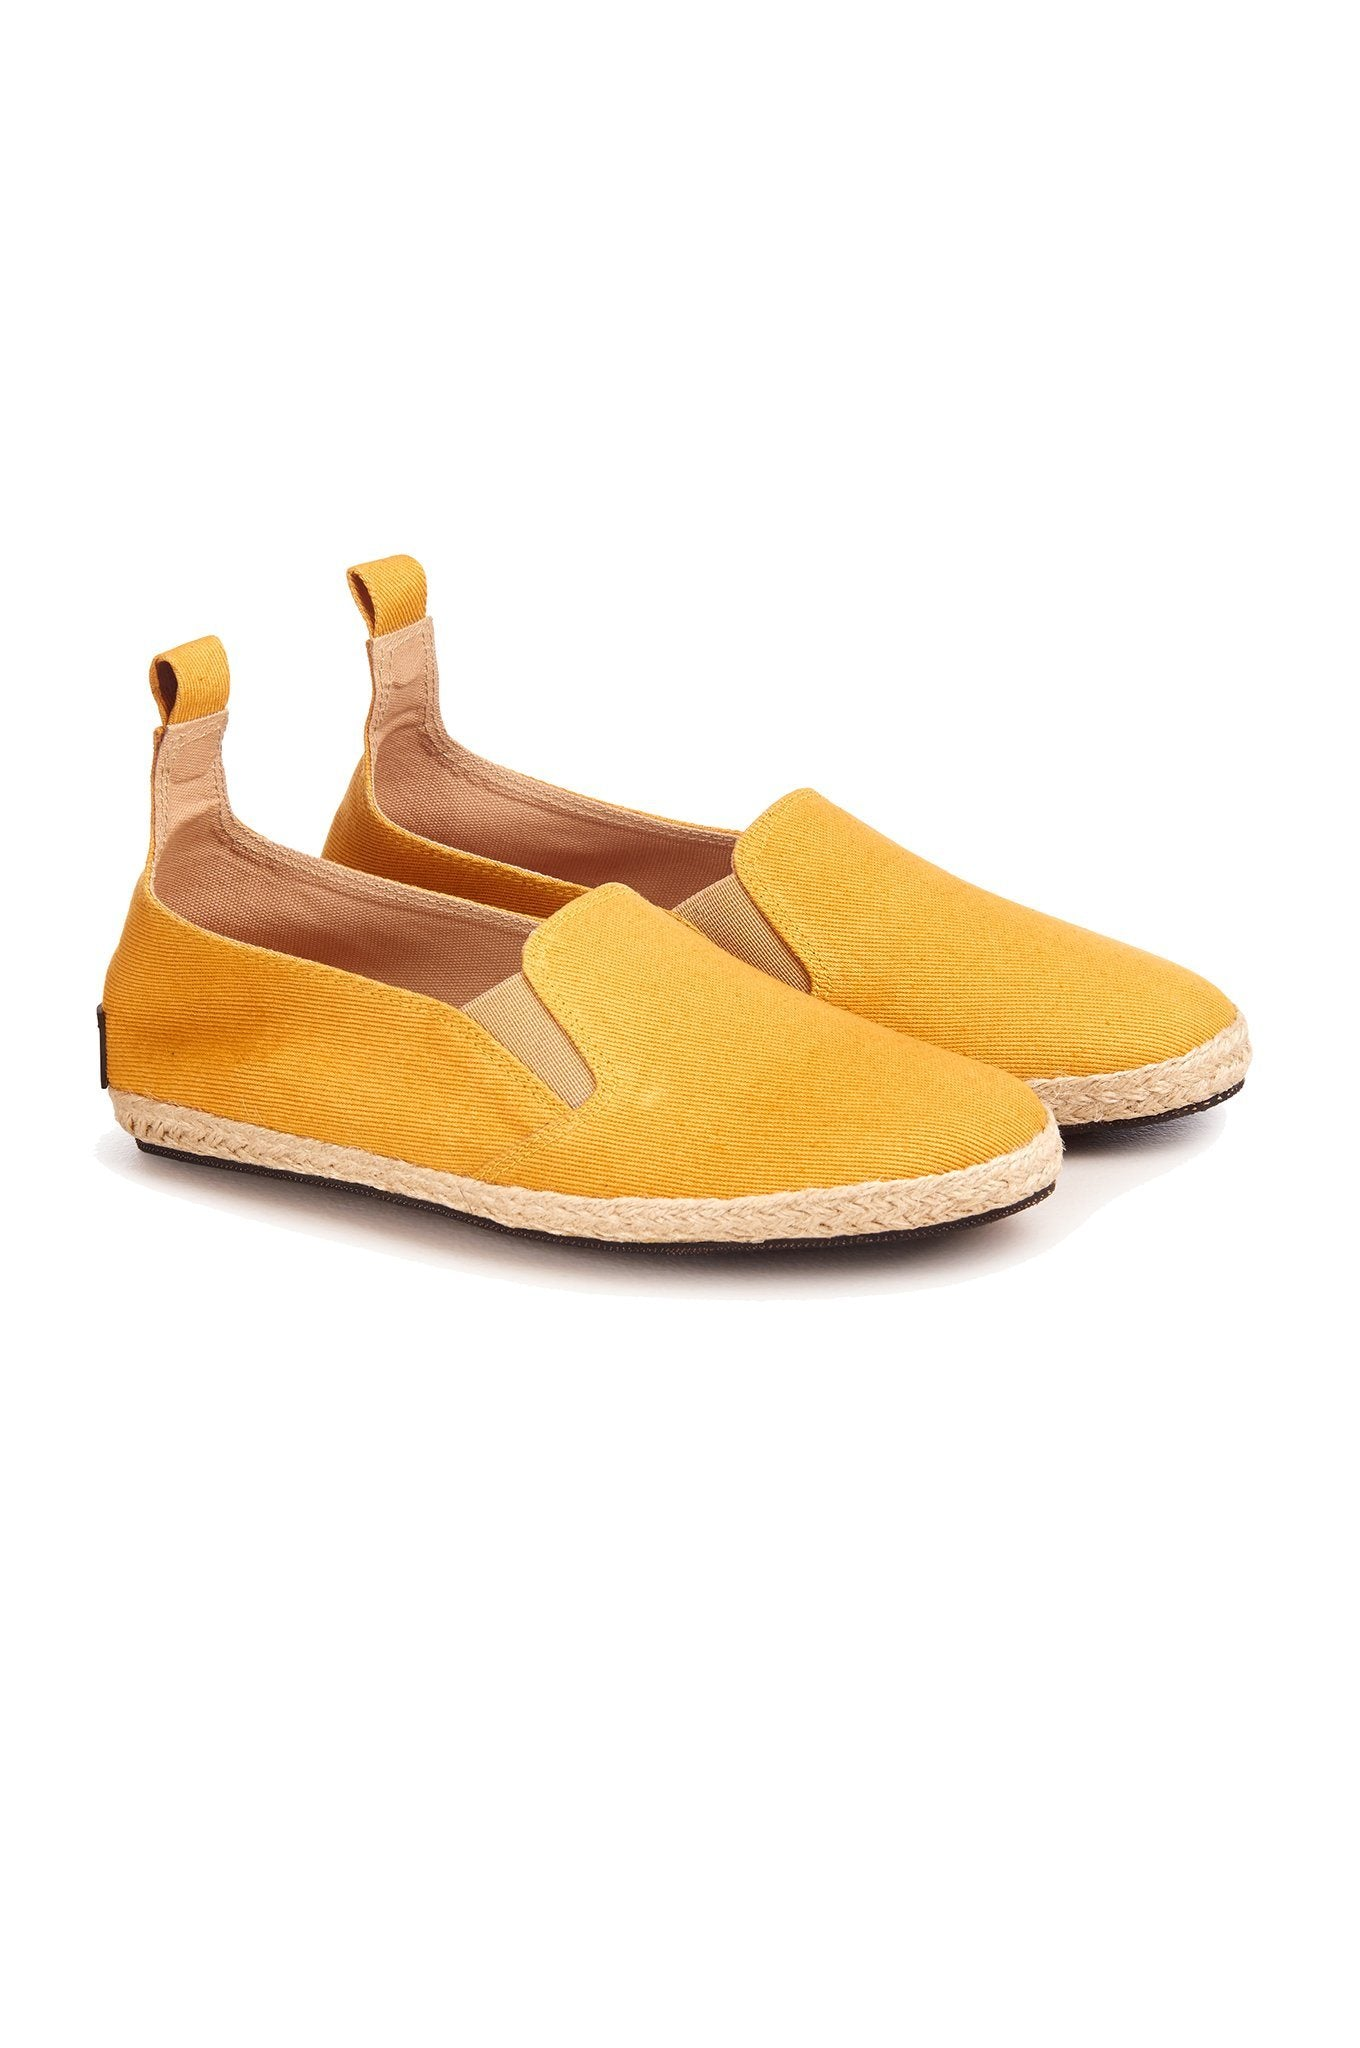 KUNG FU Amber Womens Shoes - Komodo Fashion